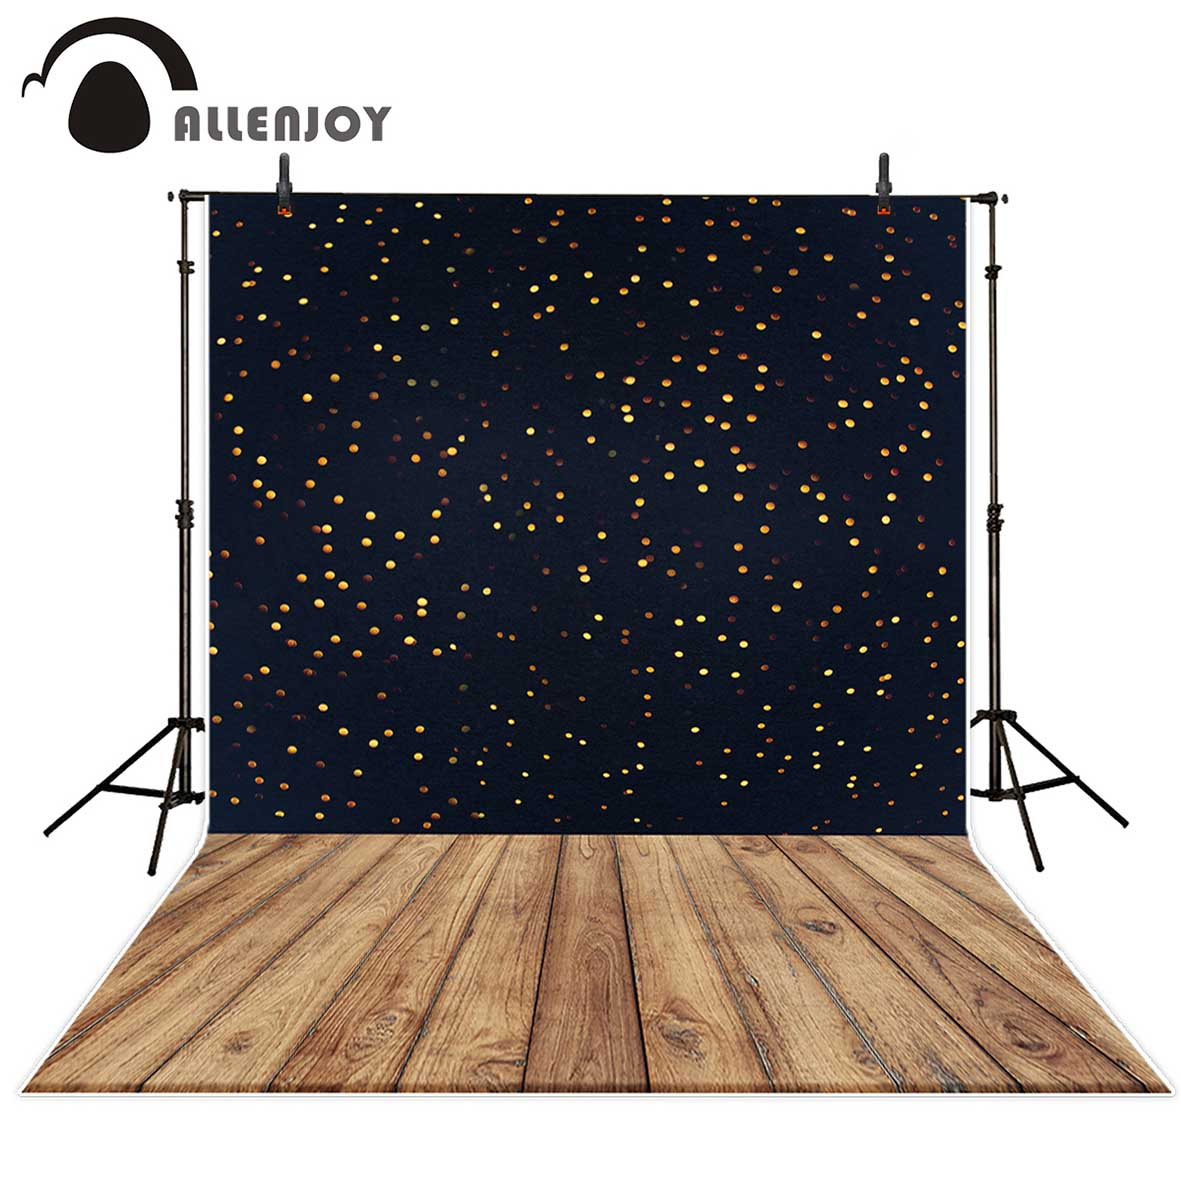 Allenjoy photography backdrops Black background gold bokeh dots wooden board backgrounds for photo studio for baby allenjoy photography backdrops green paint on wooden background wood brick wall backgrounds for photo studio